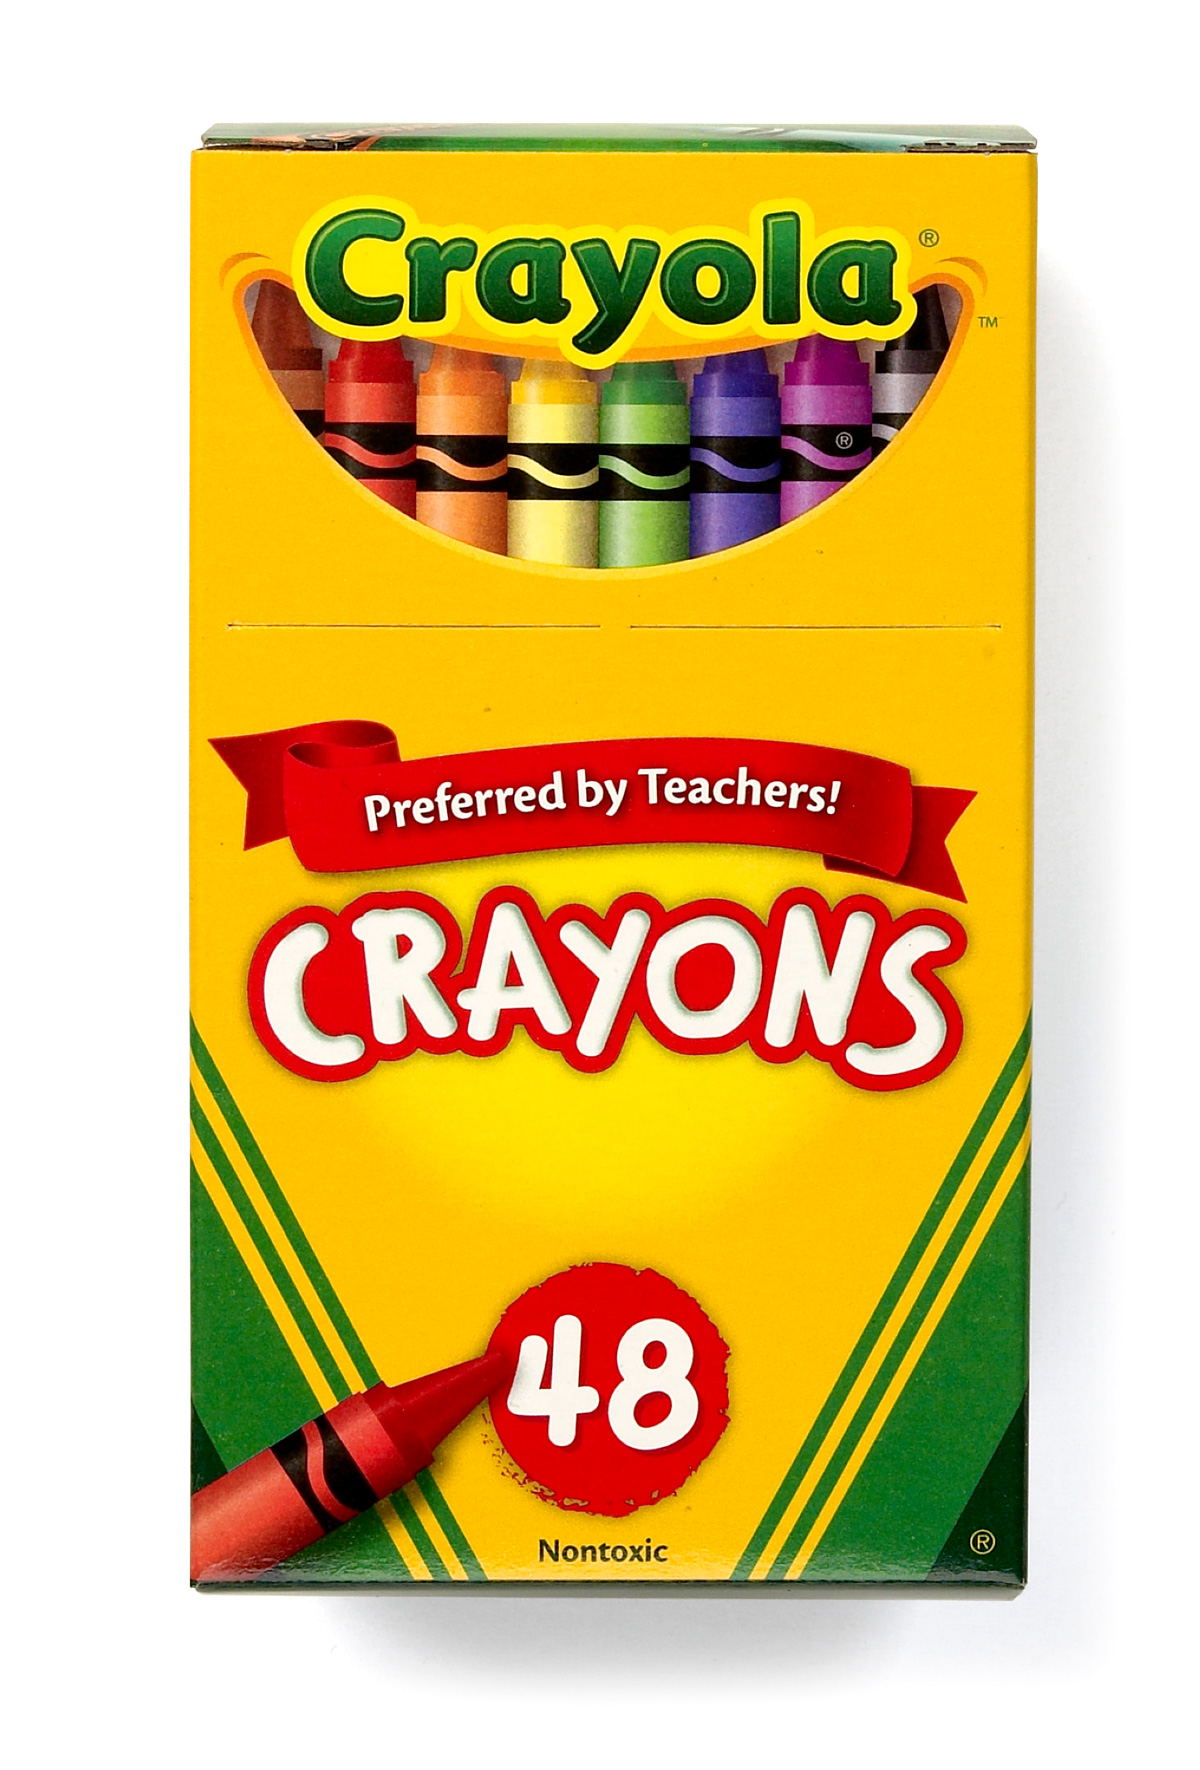 Crayons clipart. Box of black and